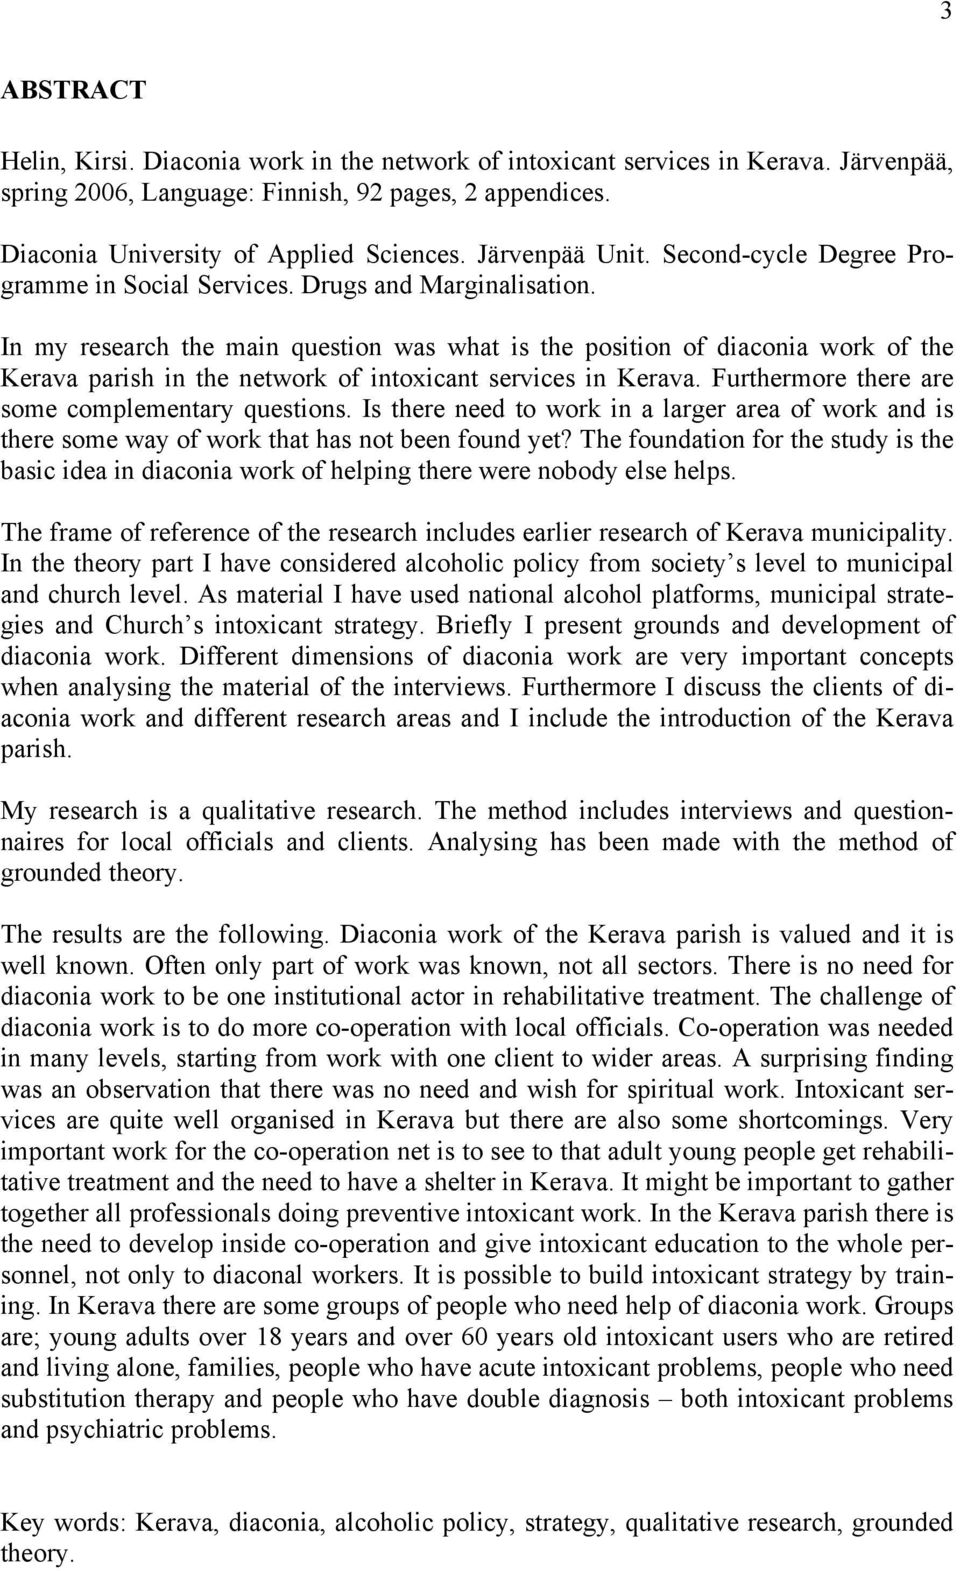 In my research the main question was what is the position of diaconia work of the Kerava parish in the network of intoxicant services in Kerava. Furthermore there are some complementary questions.